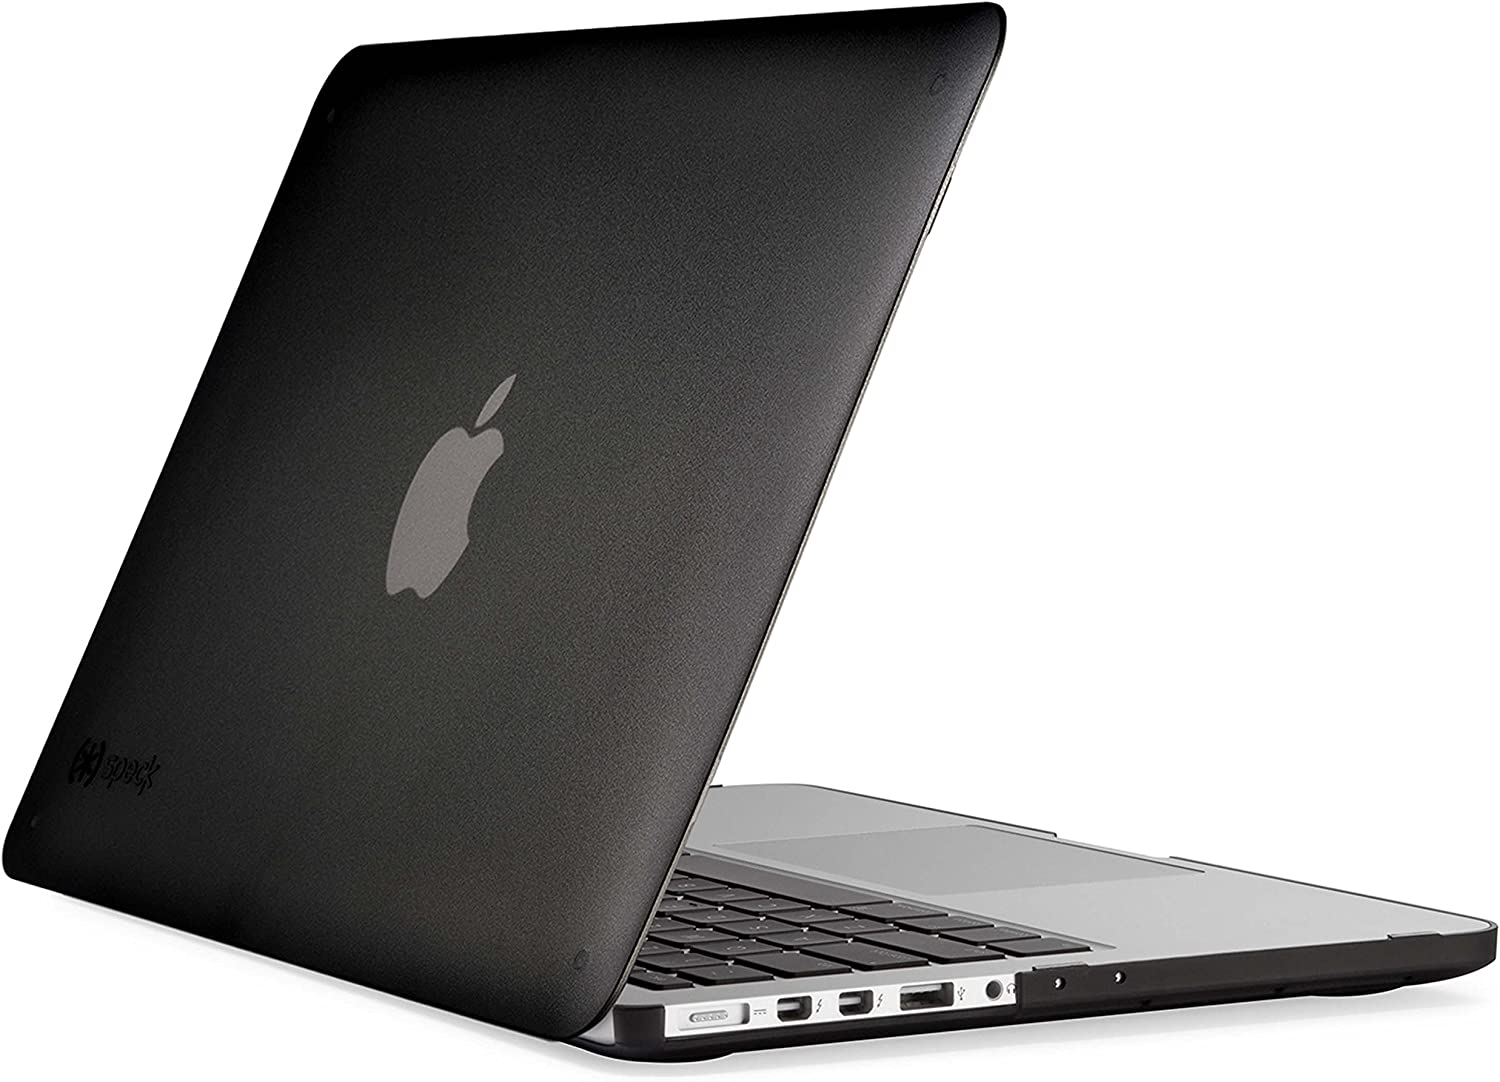 Speck Products See Thru Onyx Case for Macbook Pro 13 Inch with Retina Display, Black Matte